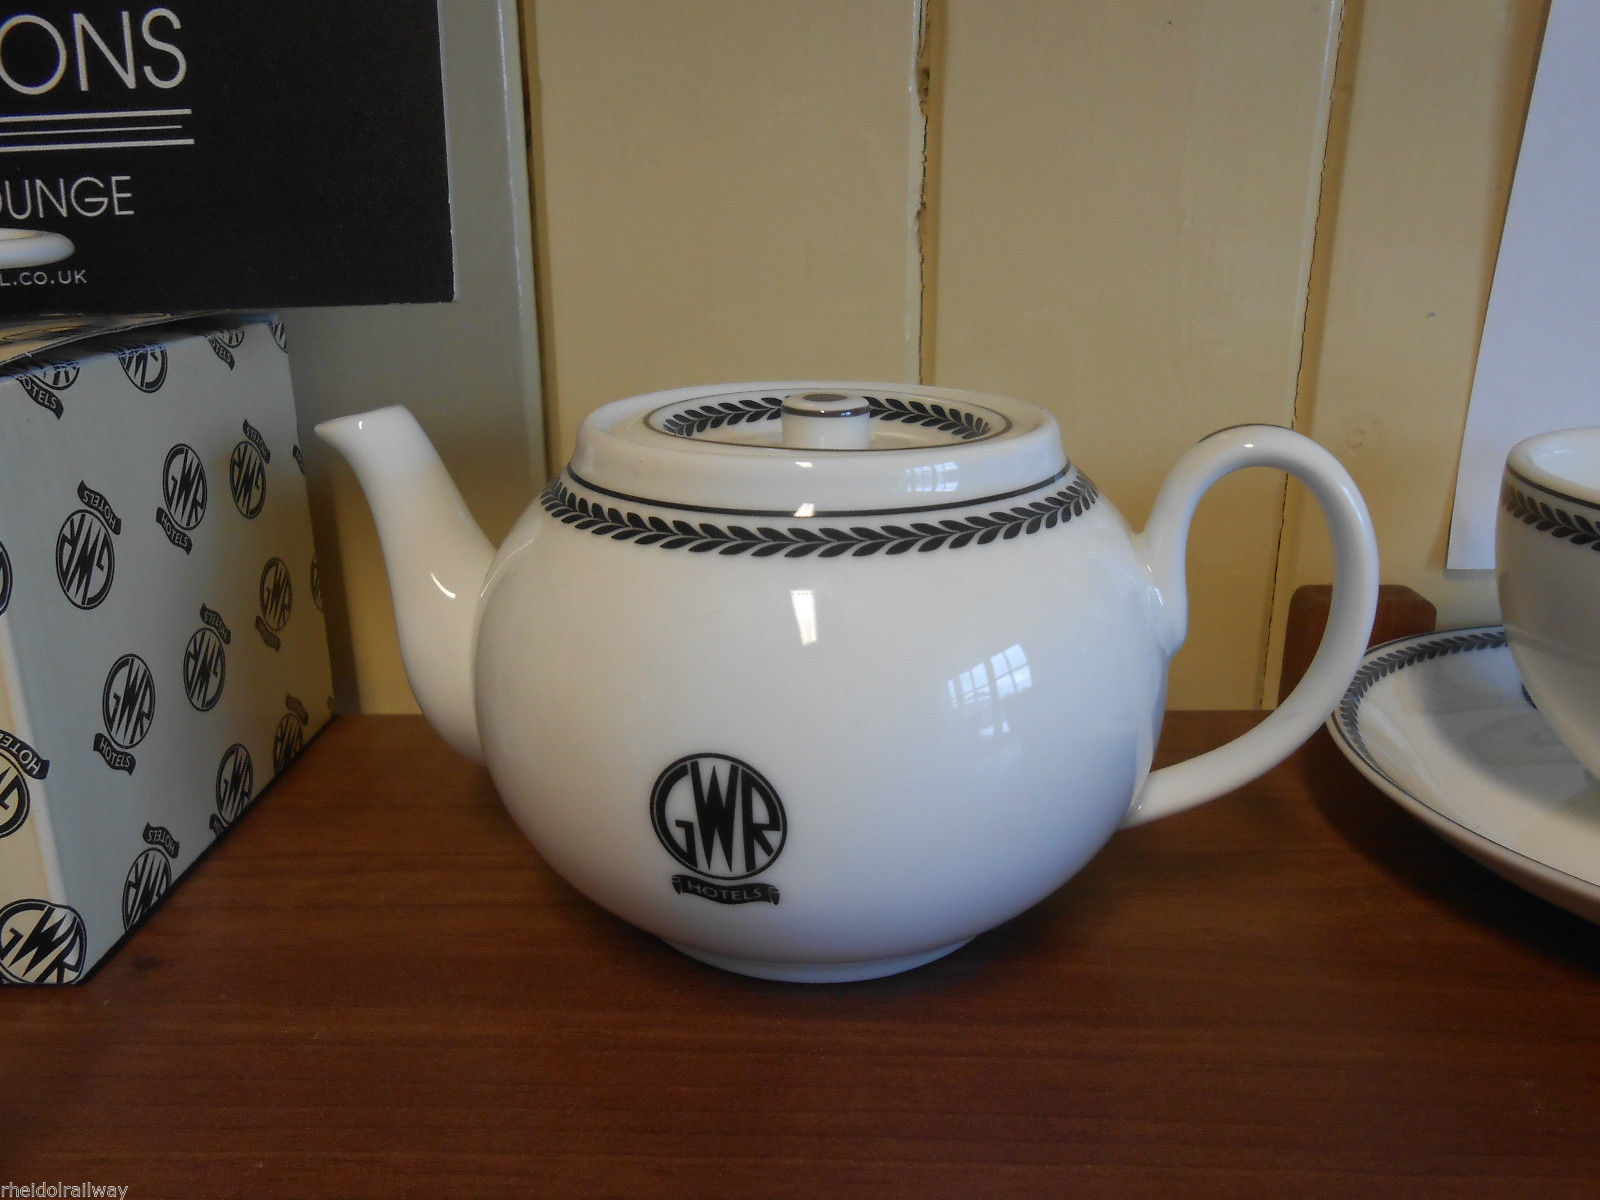 GWR replica teapot recreations by centenary Lounge - The Vale of Rheidol Railway